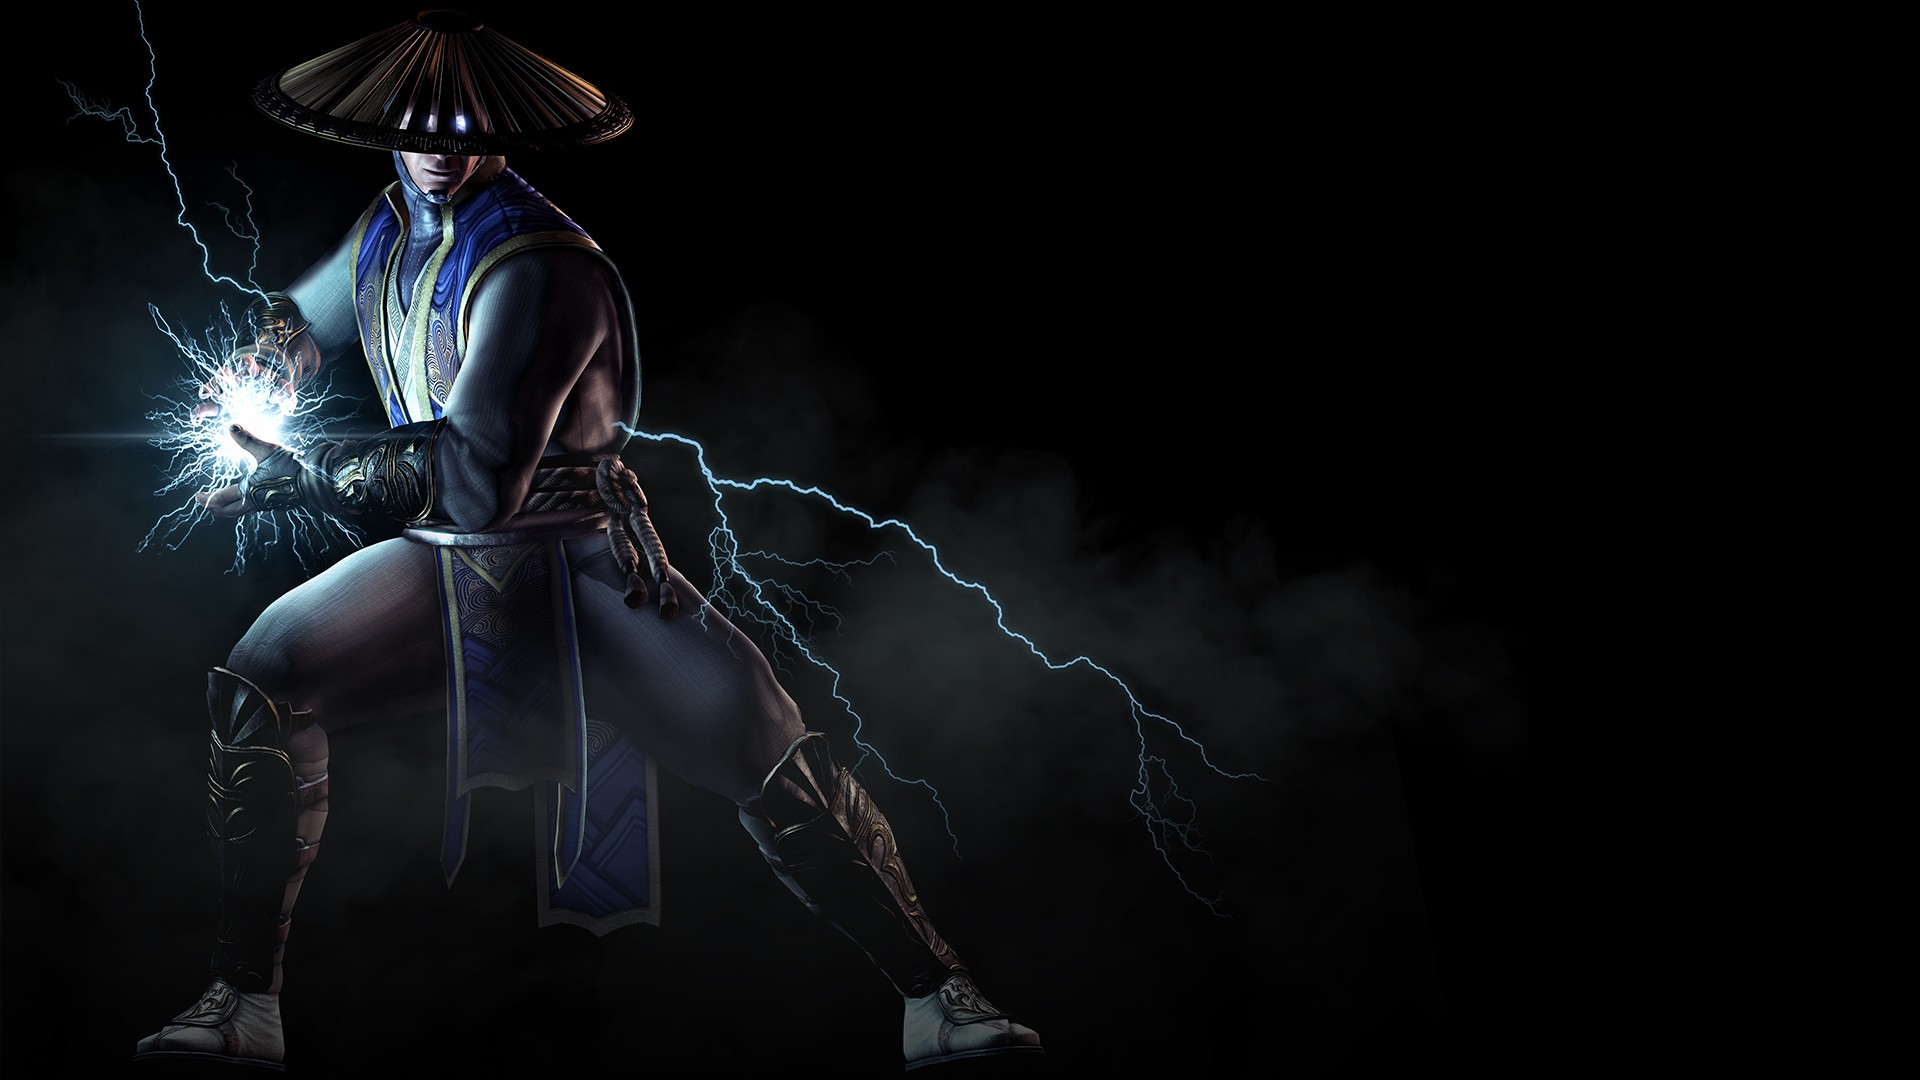 General 1920x1080 Mortal Kombat X Raiden Video Game Warriors video games